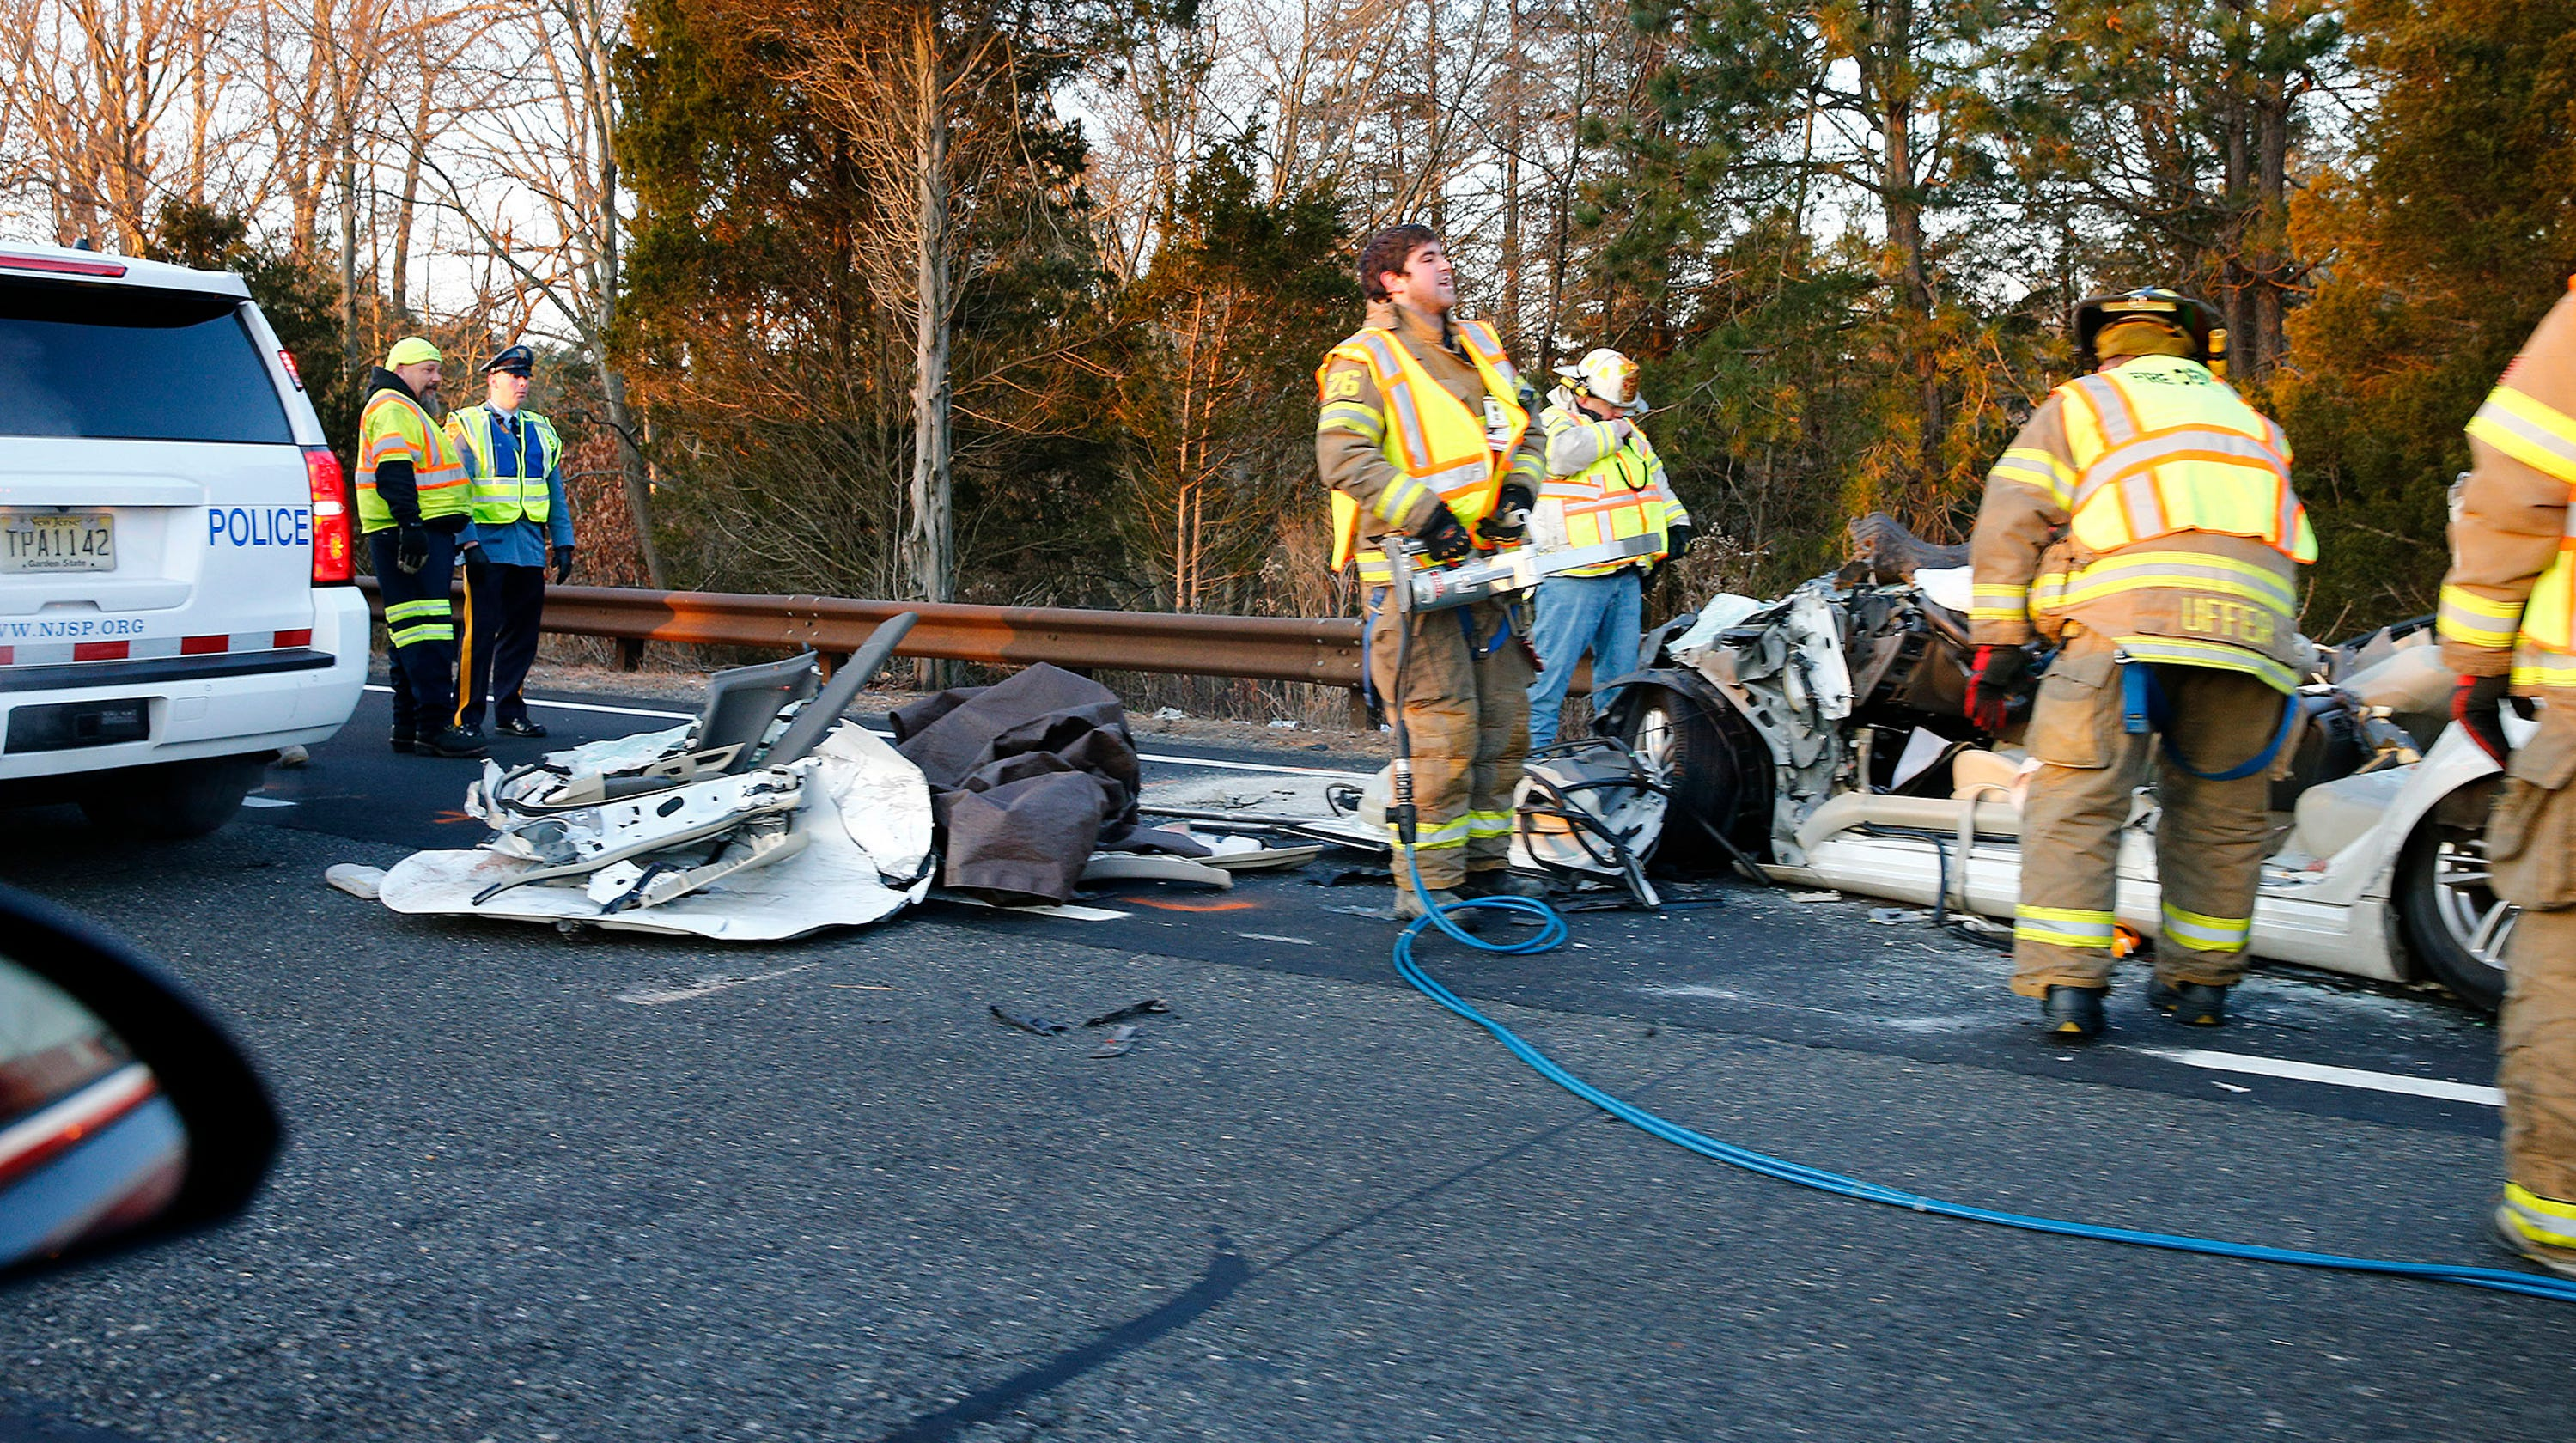 Toms river fatal garden state parkway crash - Accident on garden state parkway north today ...